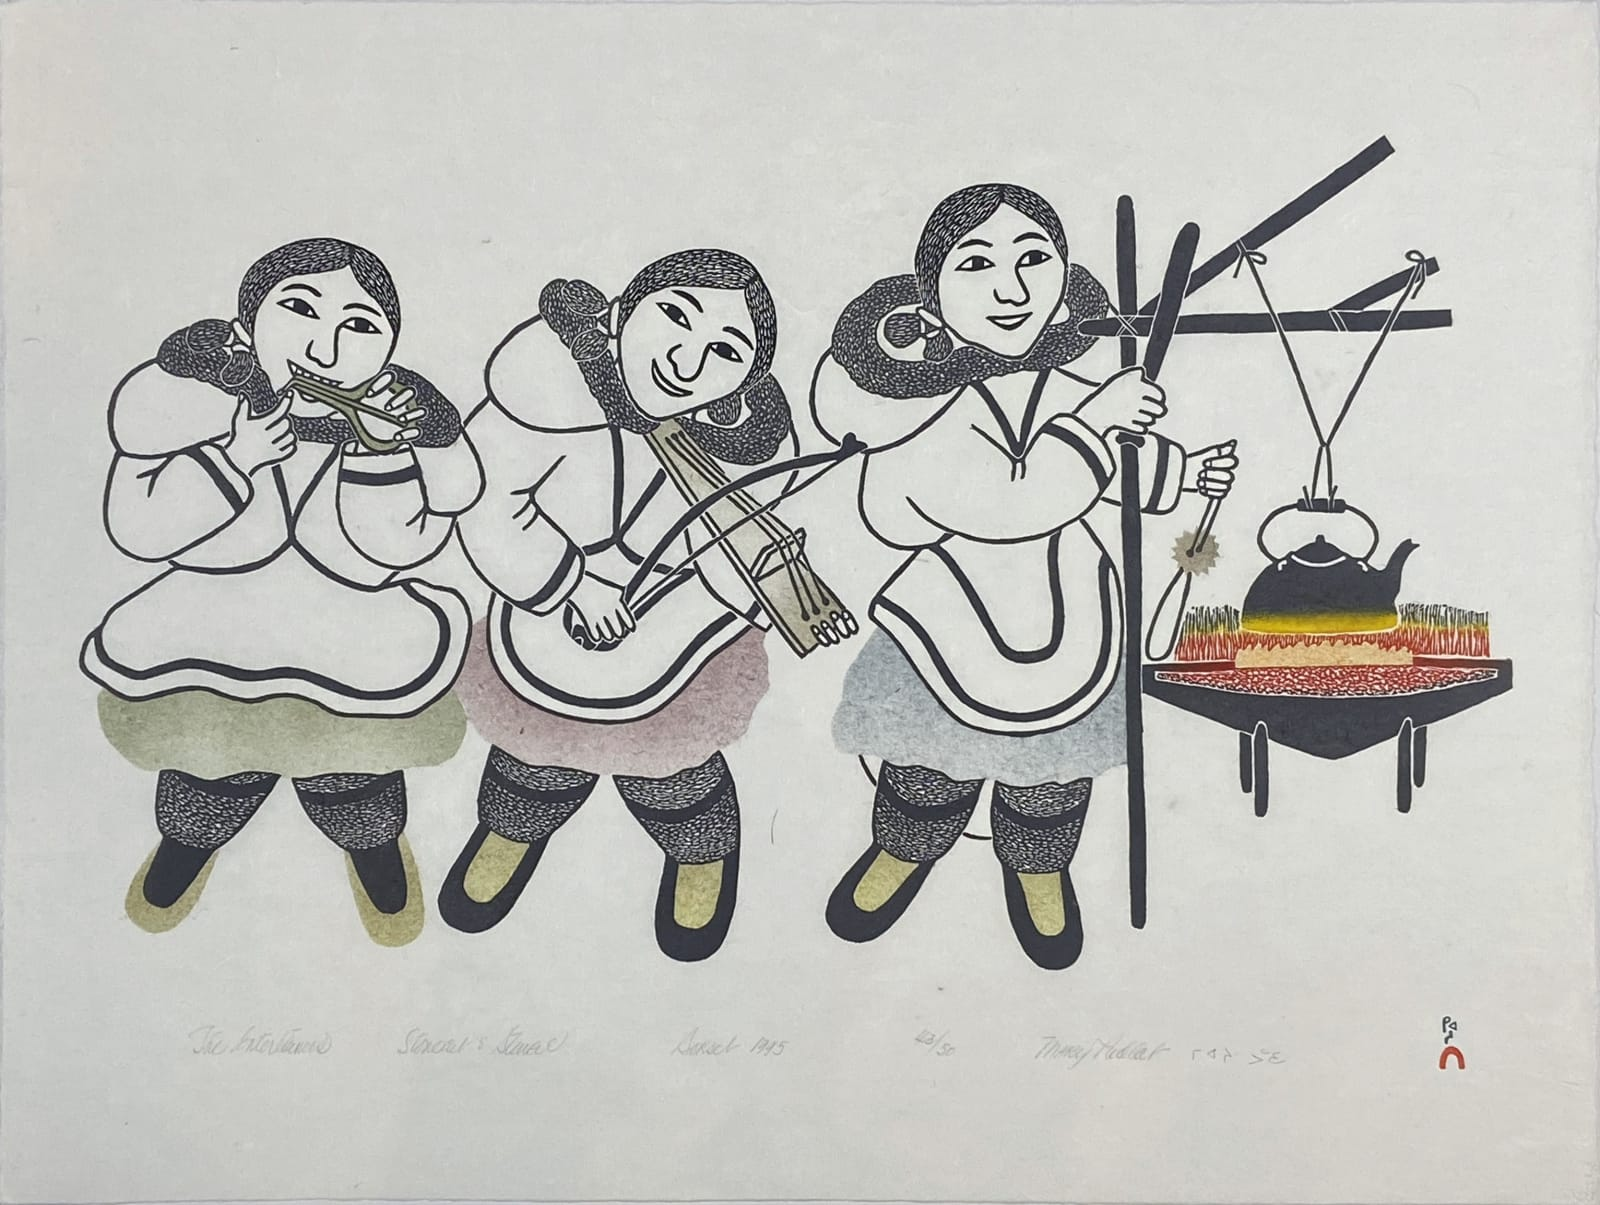 LOT 74 MARY PUDLAT (1923-2001) KINNGAIT (CAPE DORSET) The Entertainers, 1995 stonecut and stencil, 18 1/2 x 25 in (47 x 63.5 cm) ESTIMATE: $350 — $500